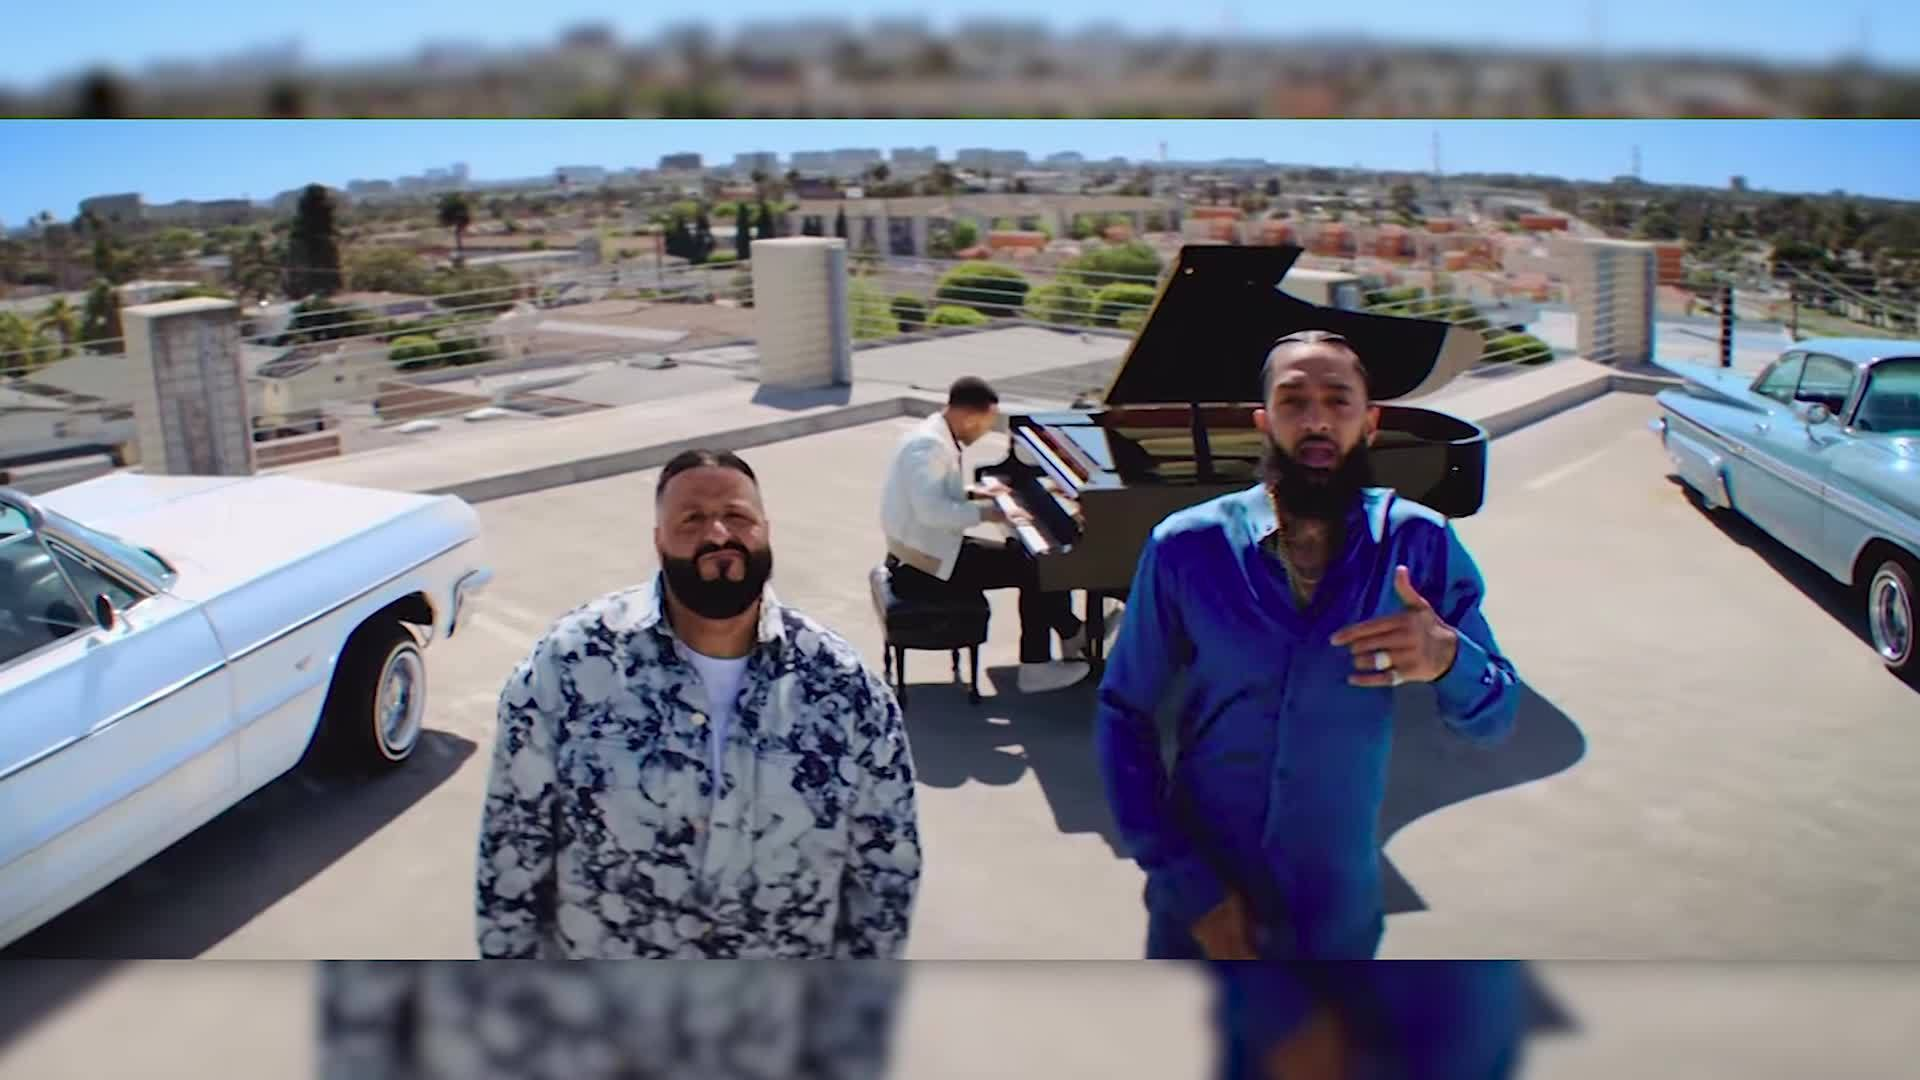 Nipsey Hussle's last music video, featuring DJ Khaled and John Legend, released